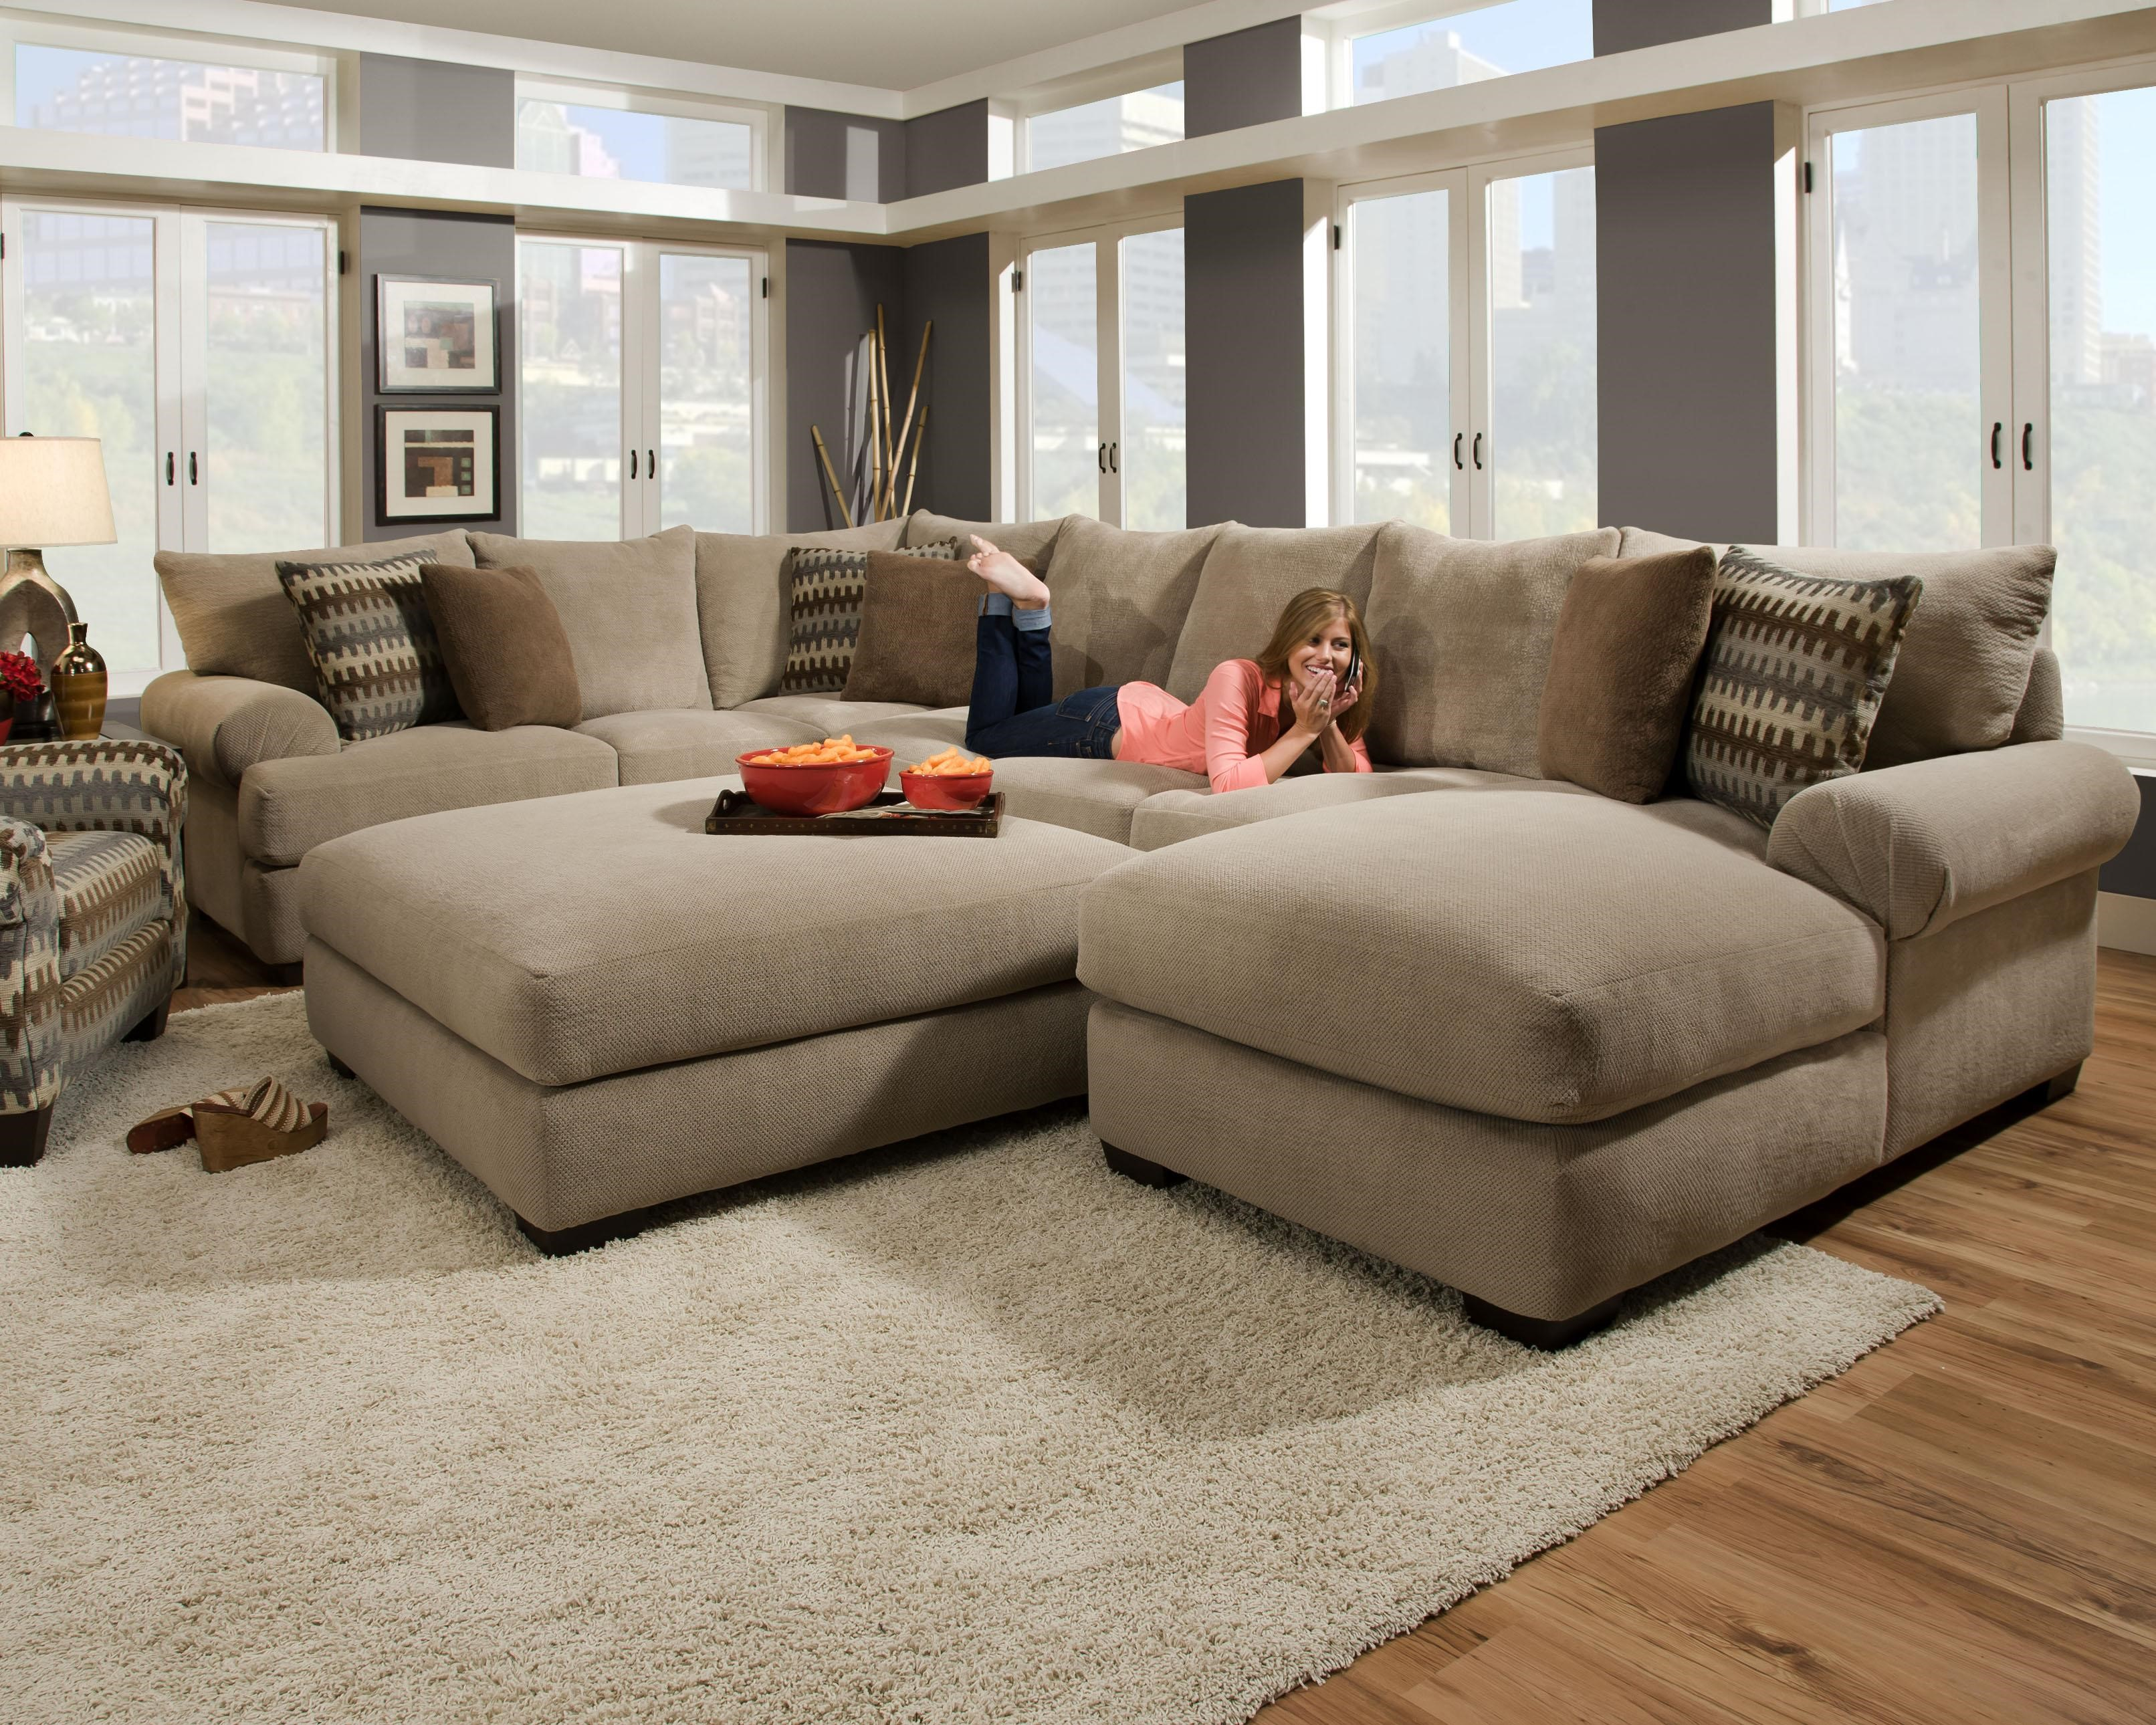 Charmant Elegant Big Sectional Sofas 82 Sofa Design Ideas With Big Sectional Sofas